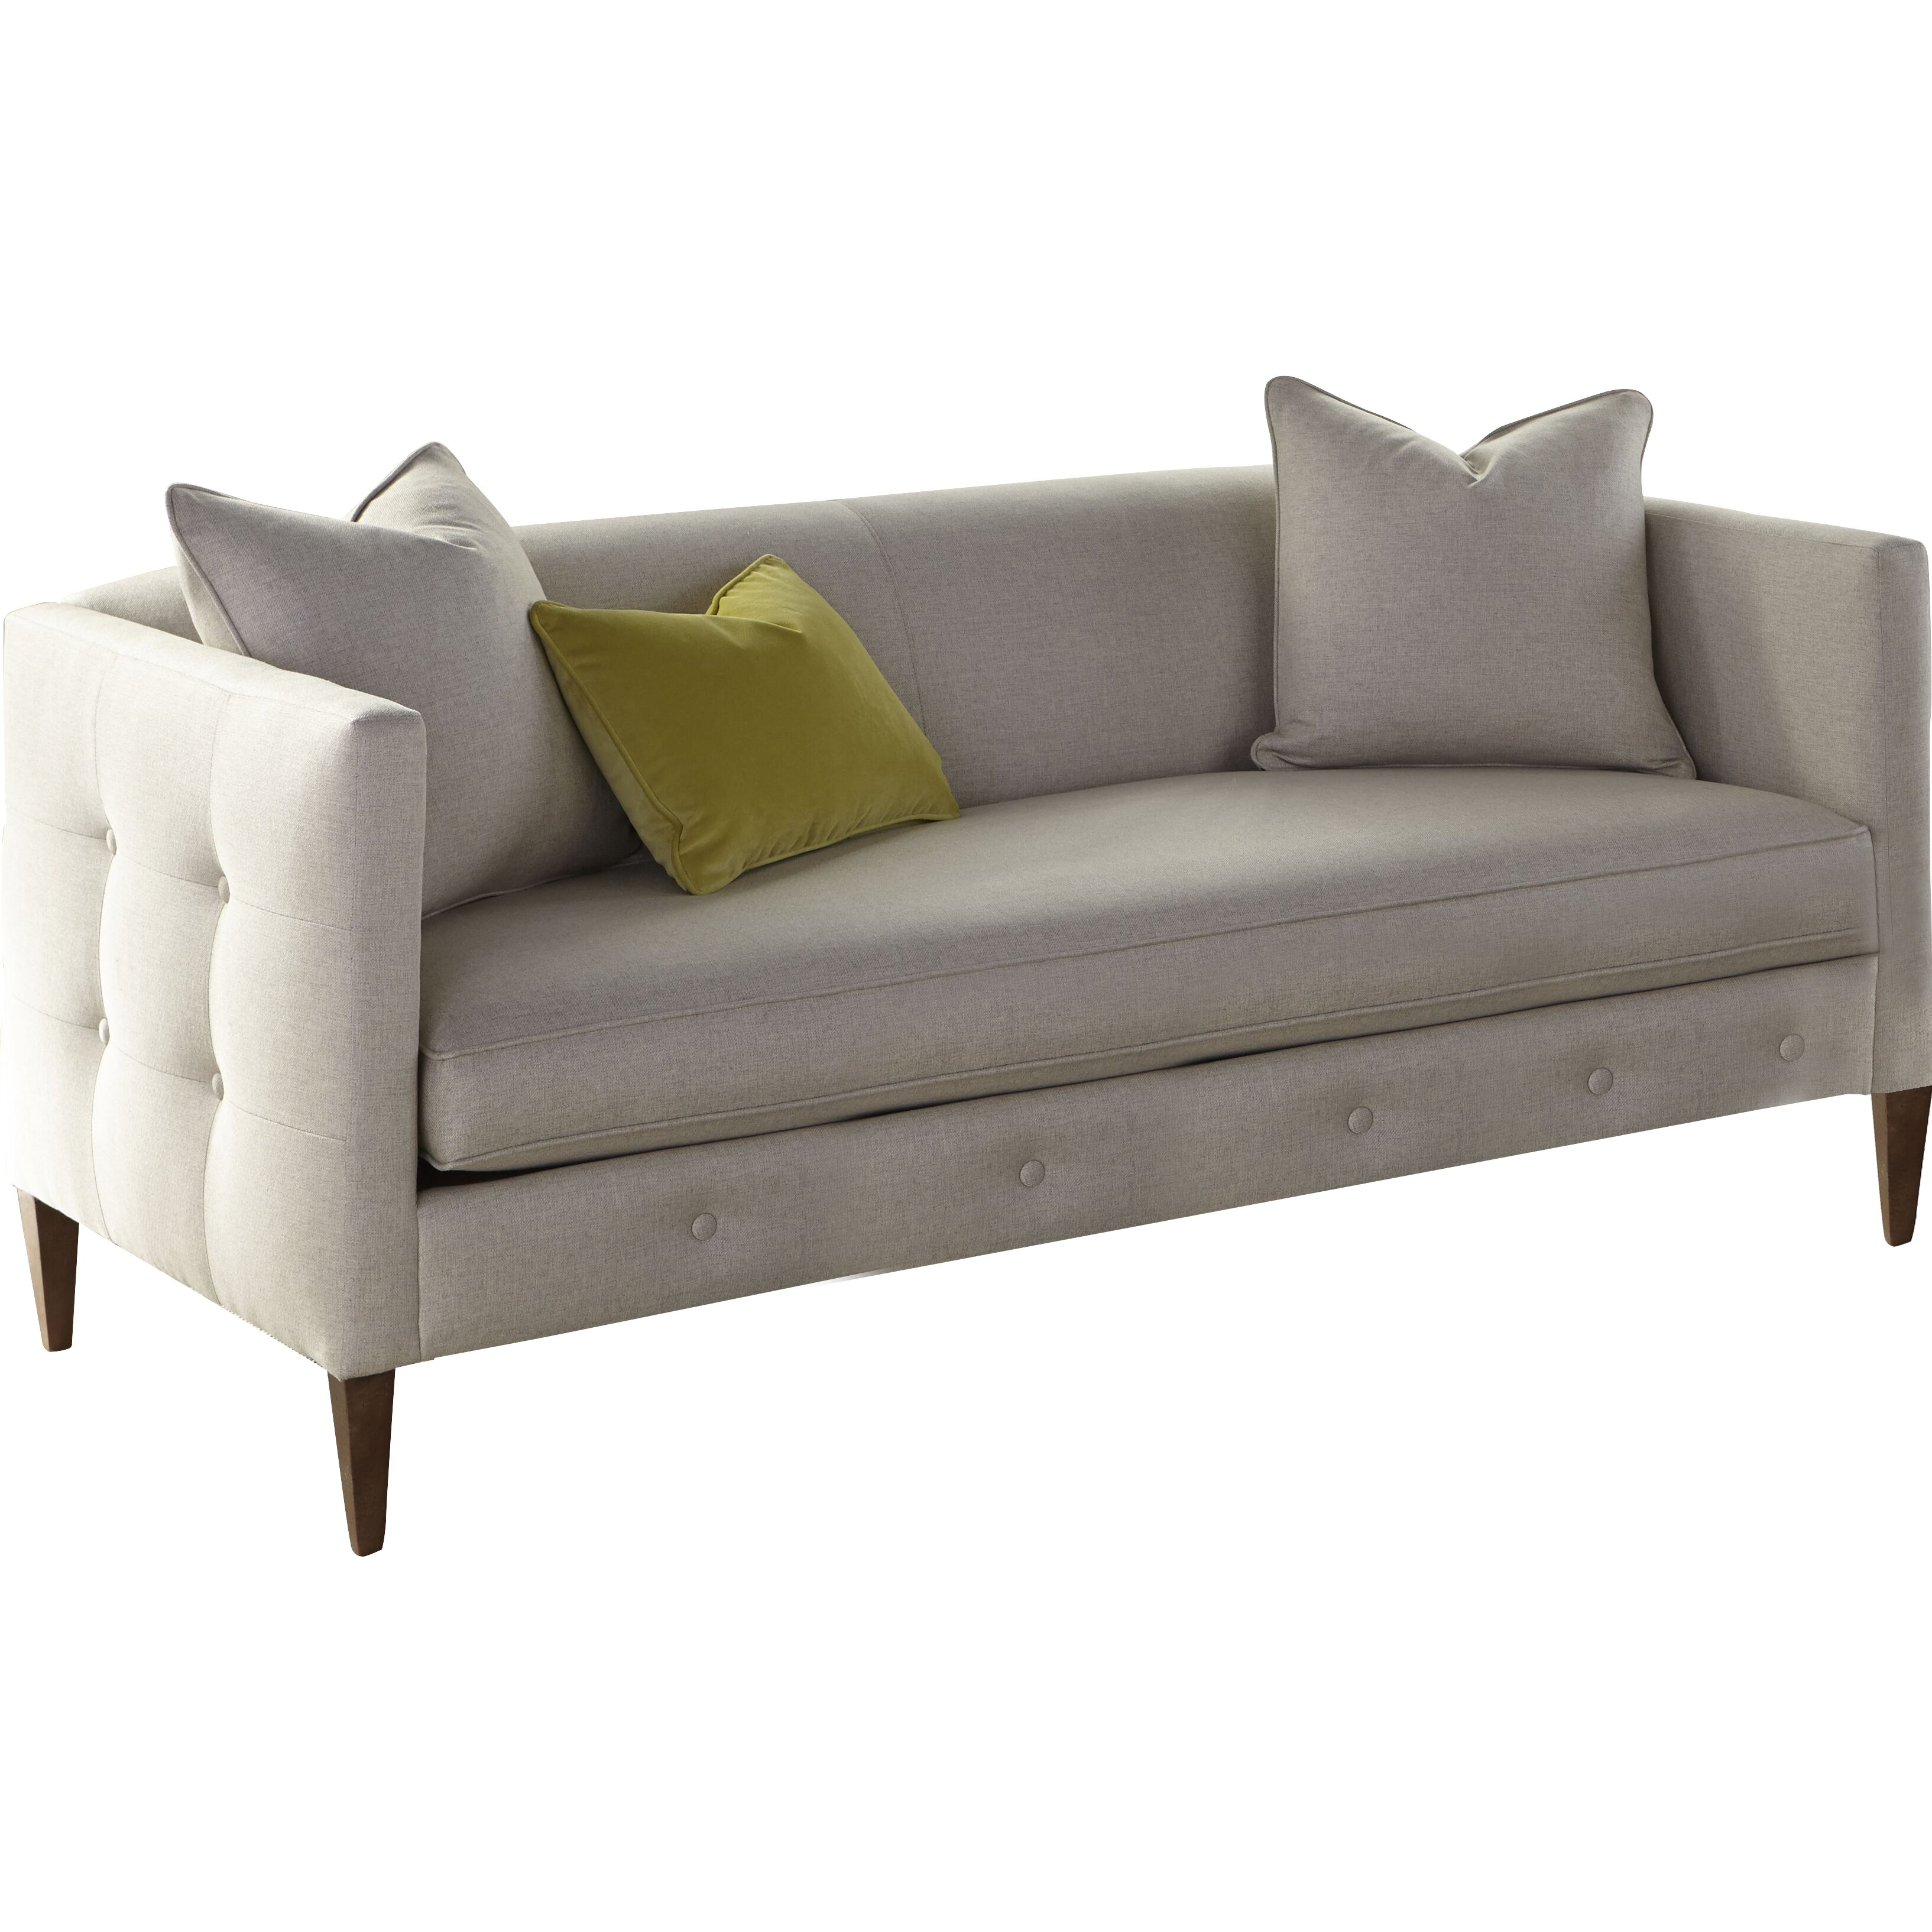 Rowe Furniture Sofa